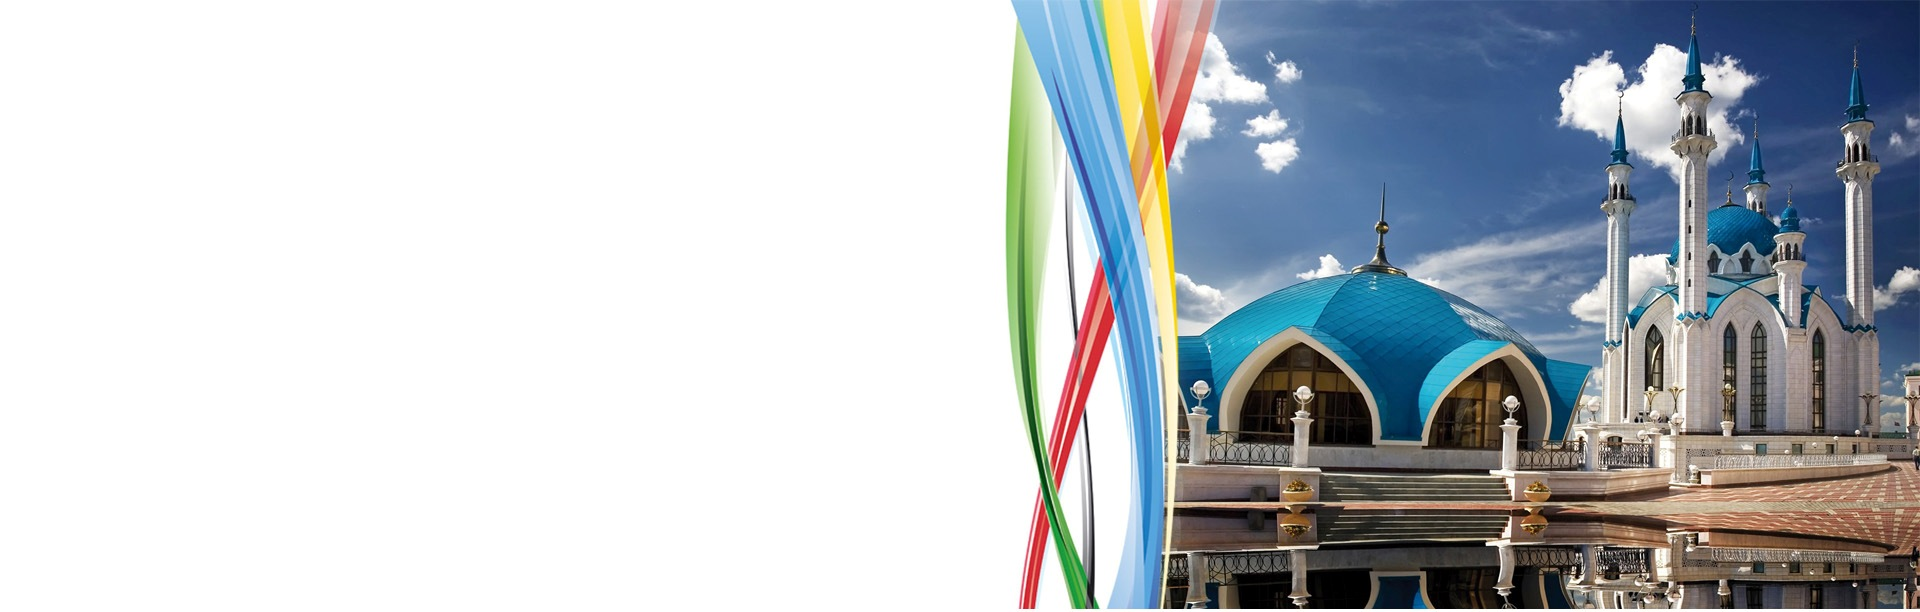 kazan-2013-universiade-wallpaper-1 (1)